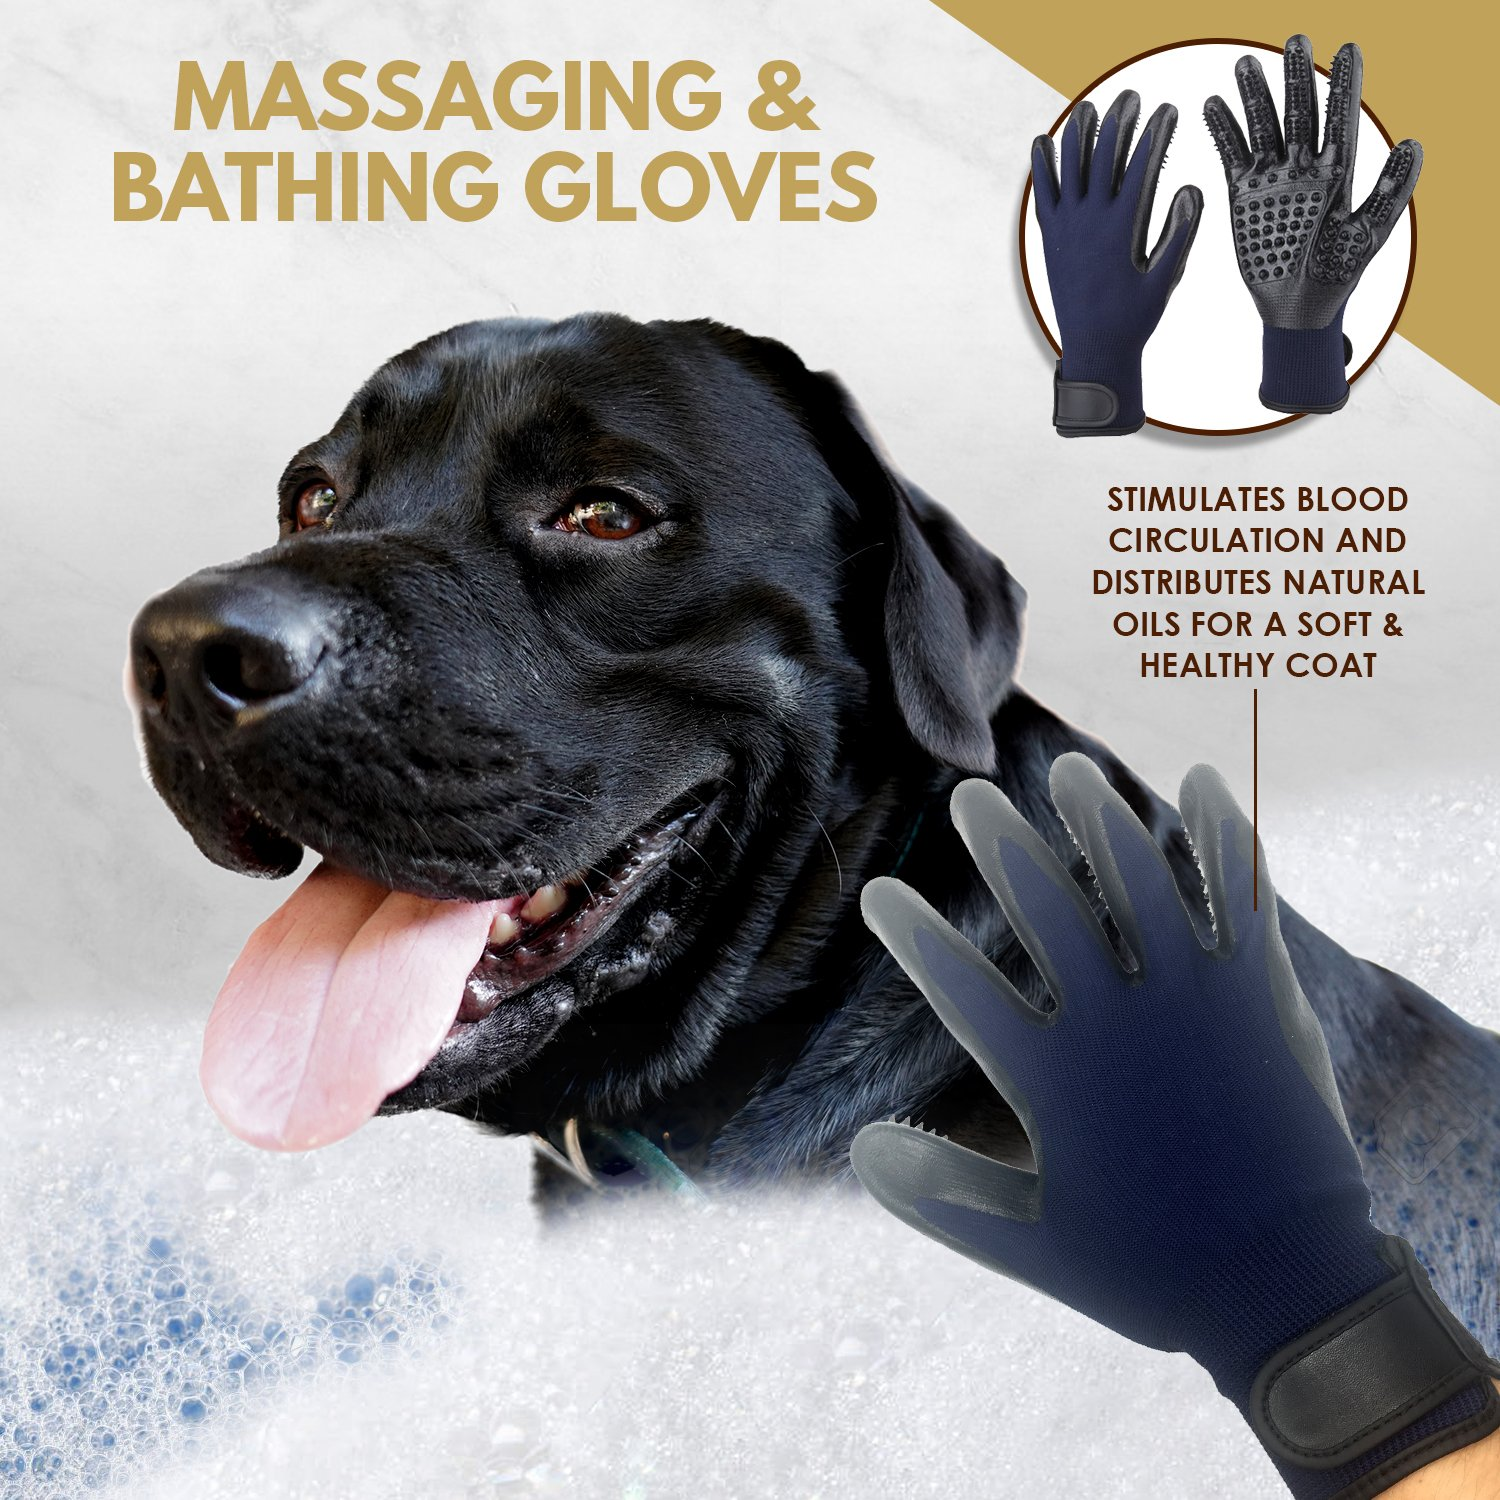 3 in 1 Pet Grooming Set,Self Cleaning Slicker Brush,Pet Comb and 1 Pair Pet grooming Gloves-Right & Left Hands,Anti Shedding Pet Hair Remover for Dogs & Cats,Deshedding Fur,Long & Short Hair,Undercoat by SOUL MUTT VAVA (Image #3)